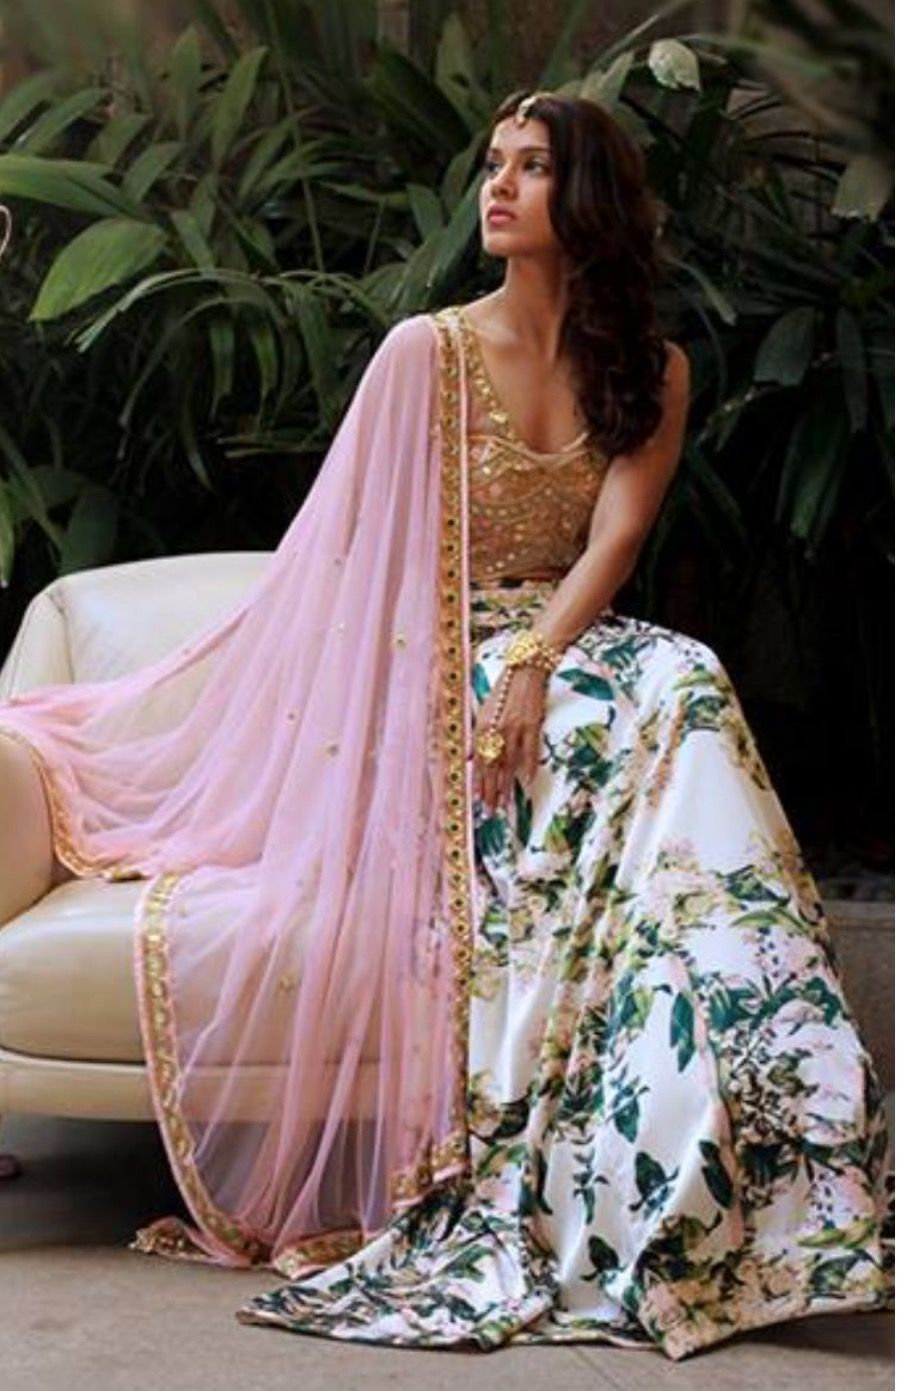 South asian wedding dresses  Pin by Amita Heer on Indian wear uc uc  Pinterest  Indian wear